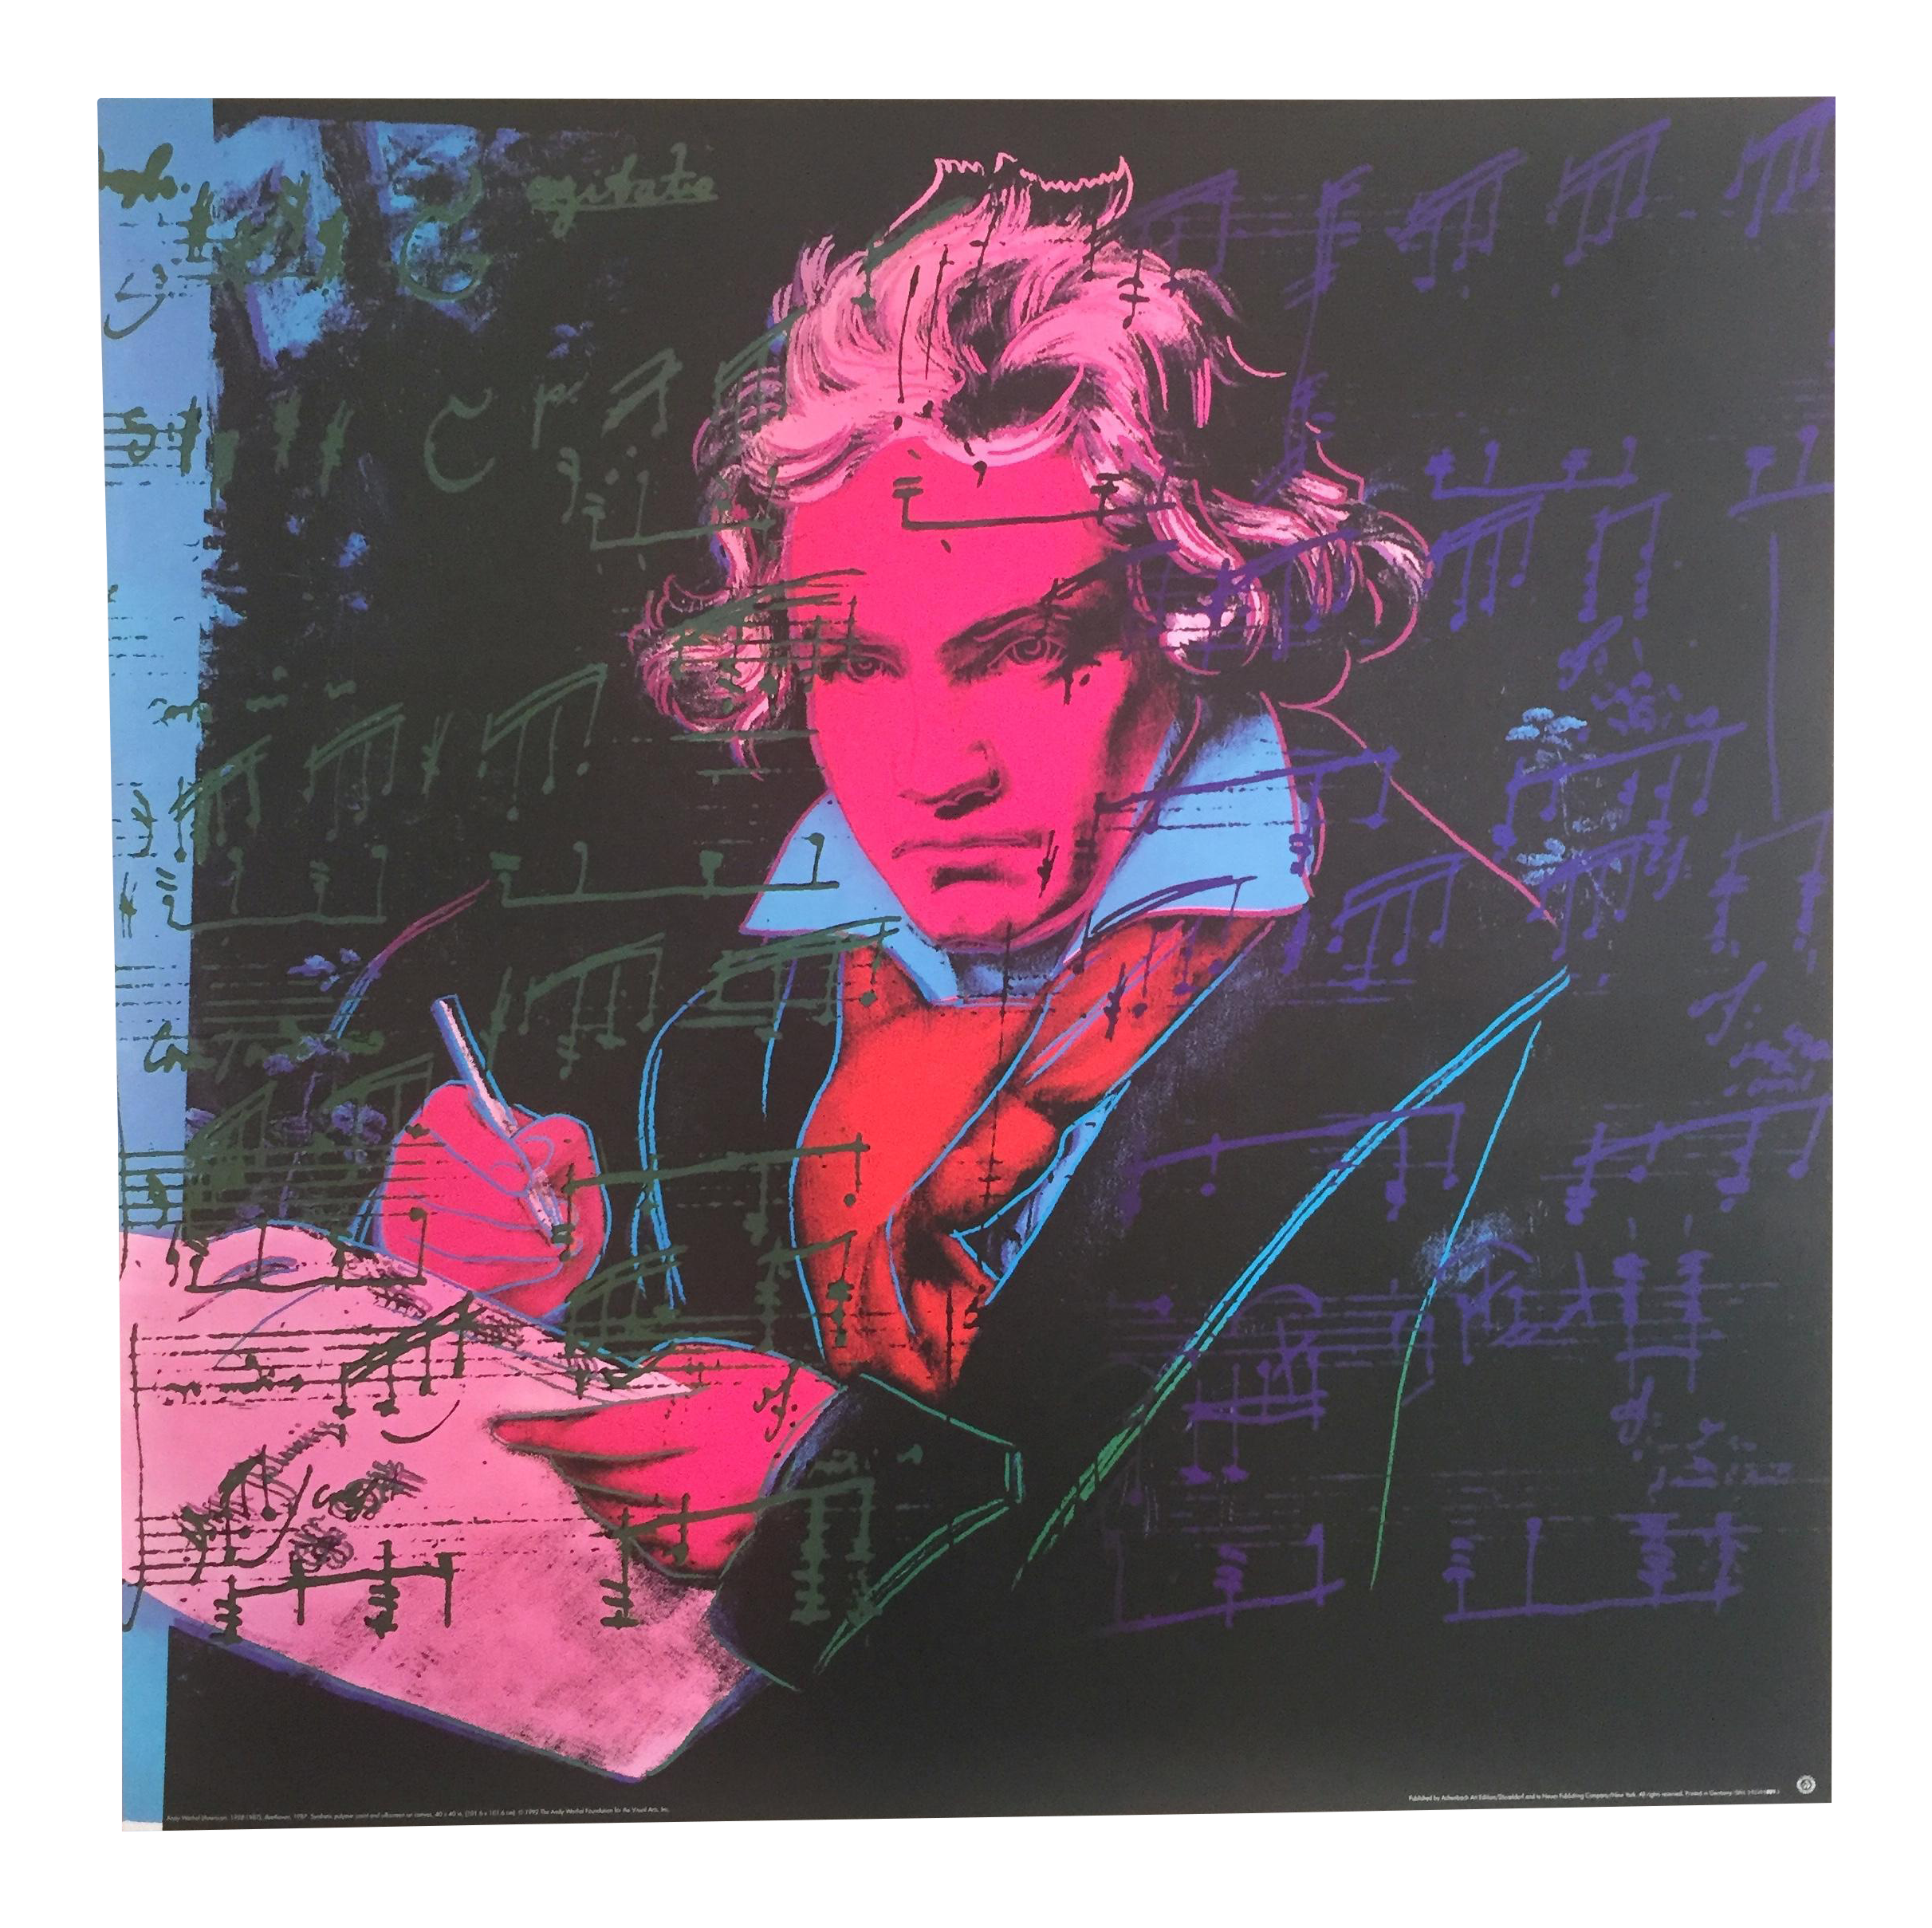 Andy Warhol Original Offset Lithograph Poster Of Beethoven In Pink Chairish